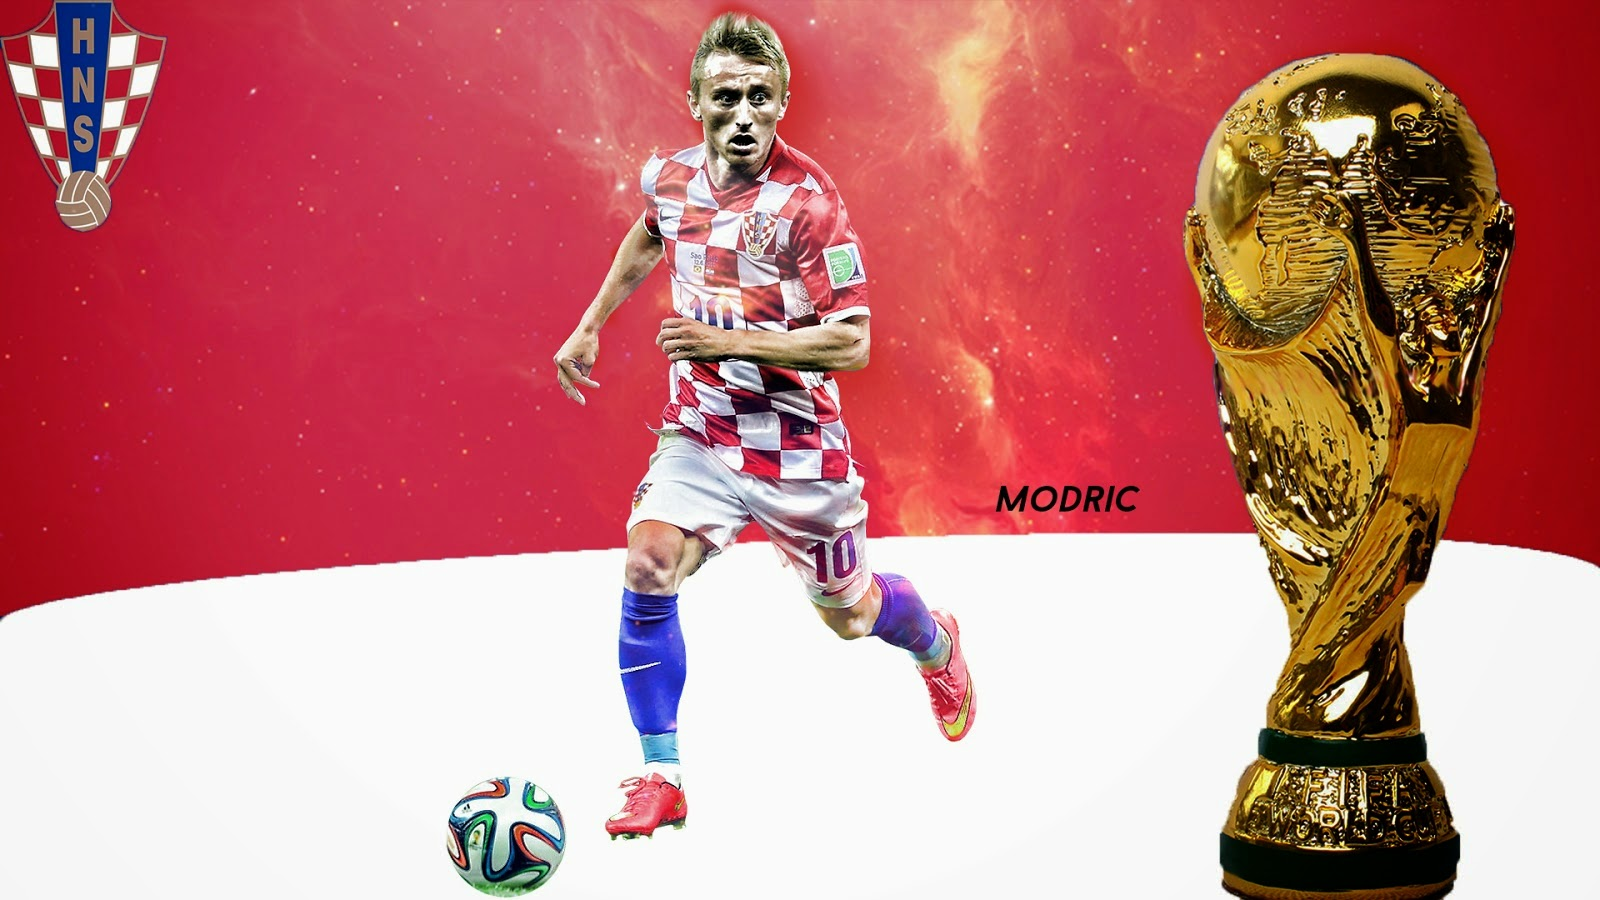 Mesut Ozil Wallpapers Hd Arsenal Download Luka Modric Wallpapers Hd Wallpaper